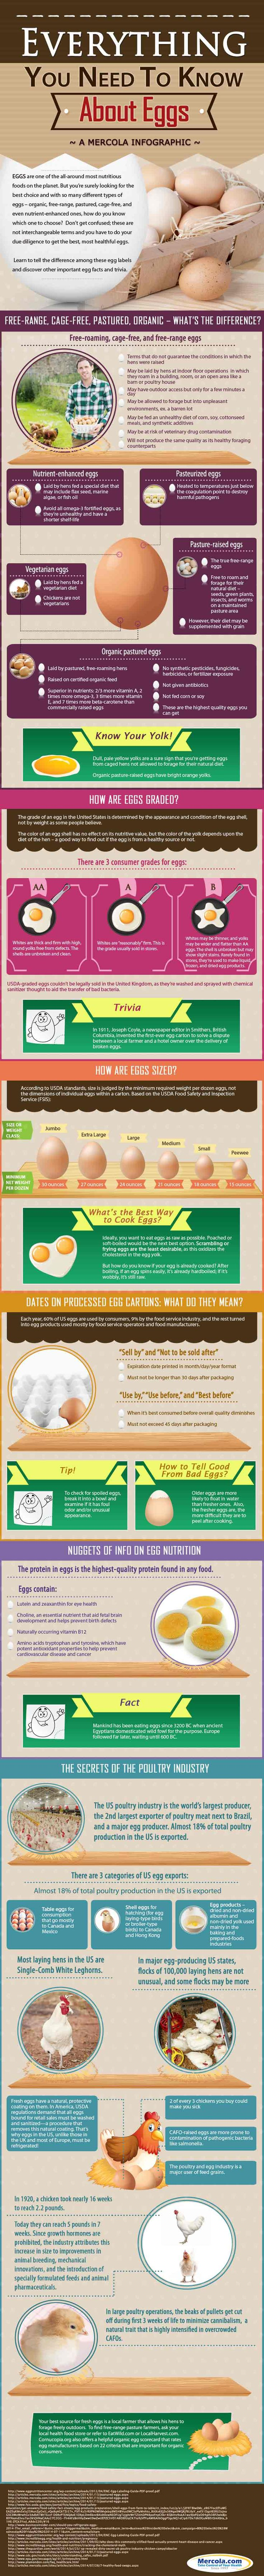 Everything You Need to Know About Eggs [by Mercola -- via Tipsographic] #eggs #organicfood #organic #tipsographic